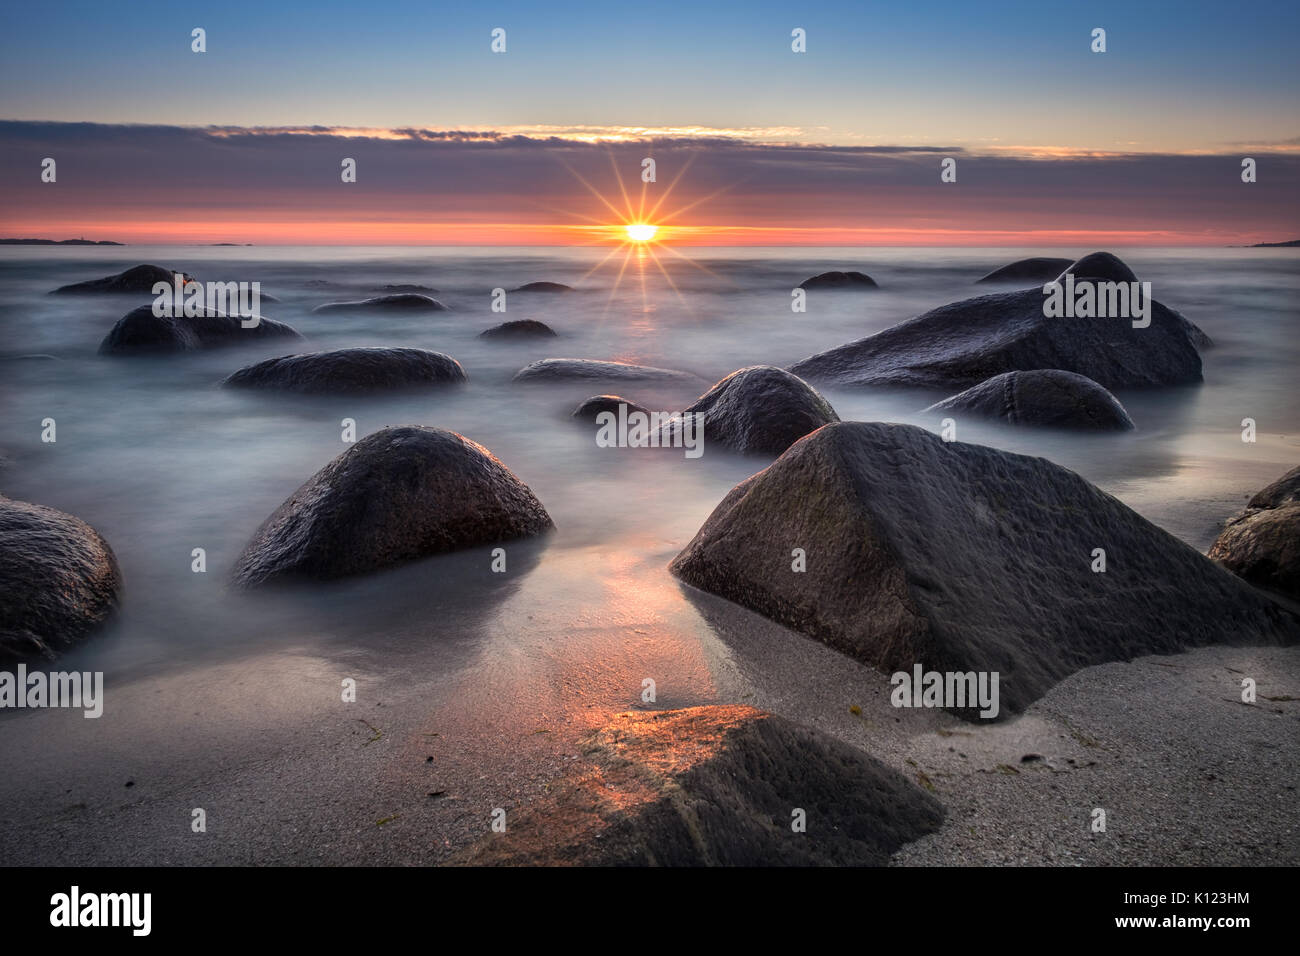 Scenic view from beach with stones and sunset at summer night in Lofoten, Norway - Stock Image